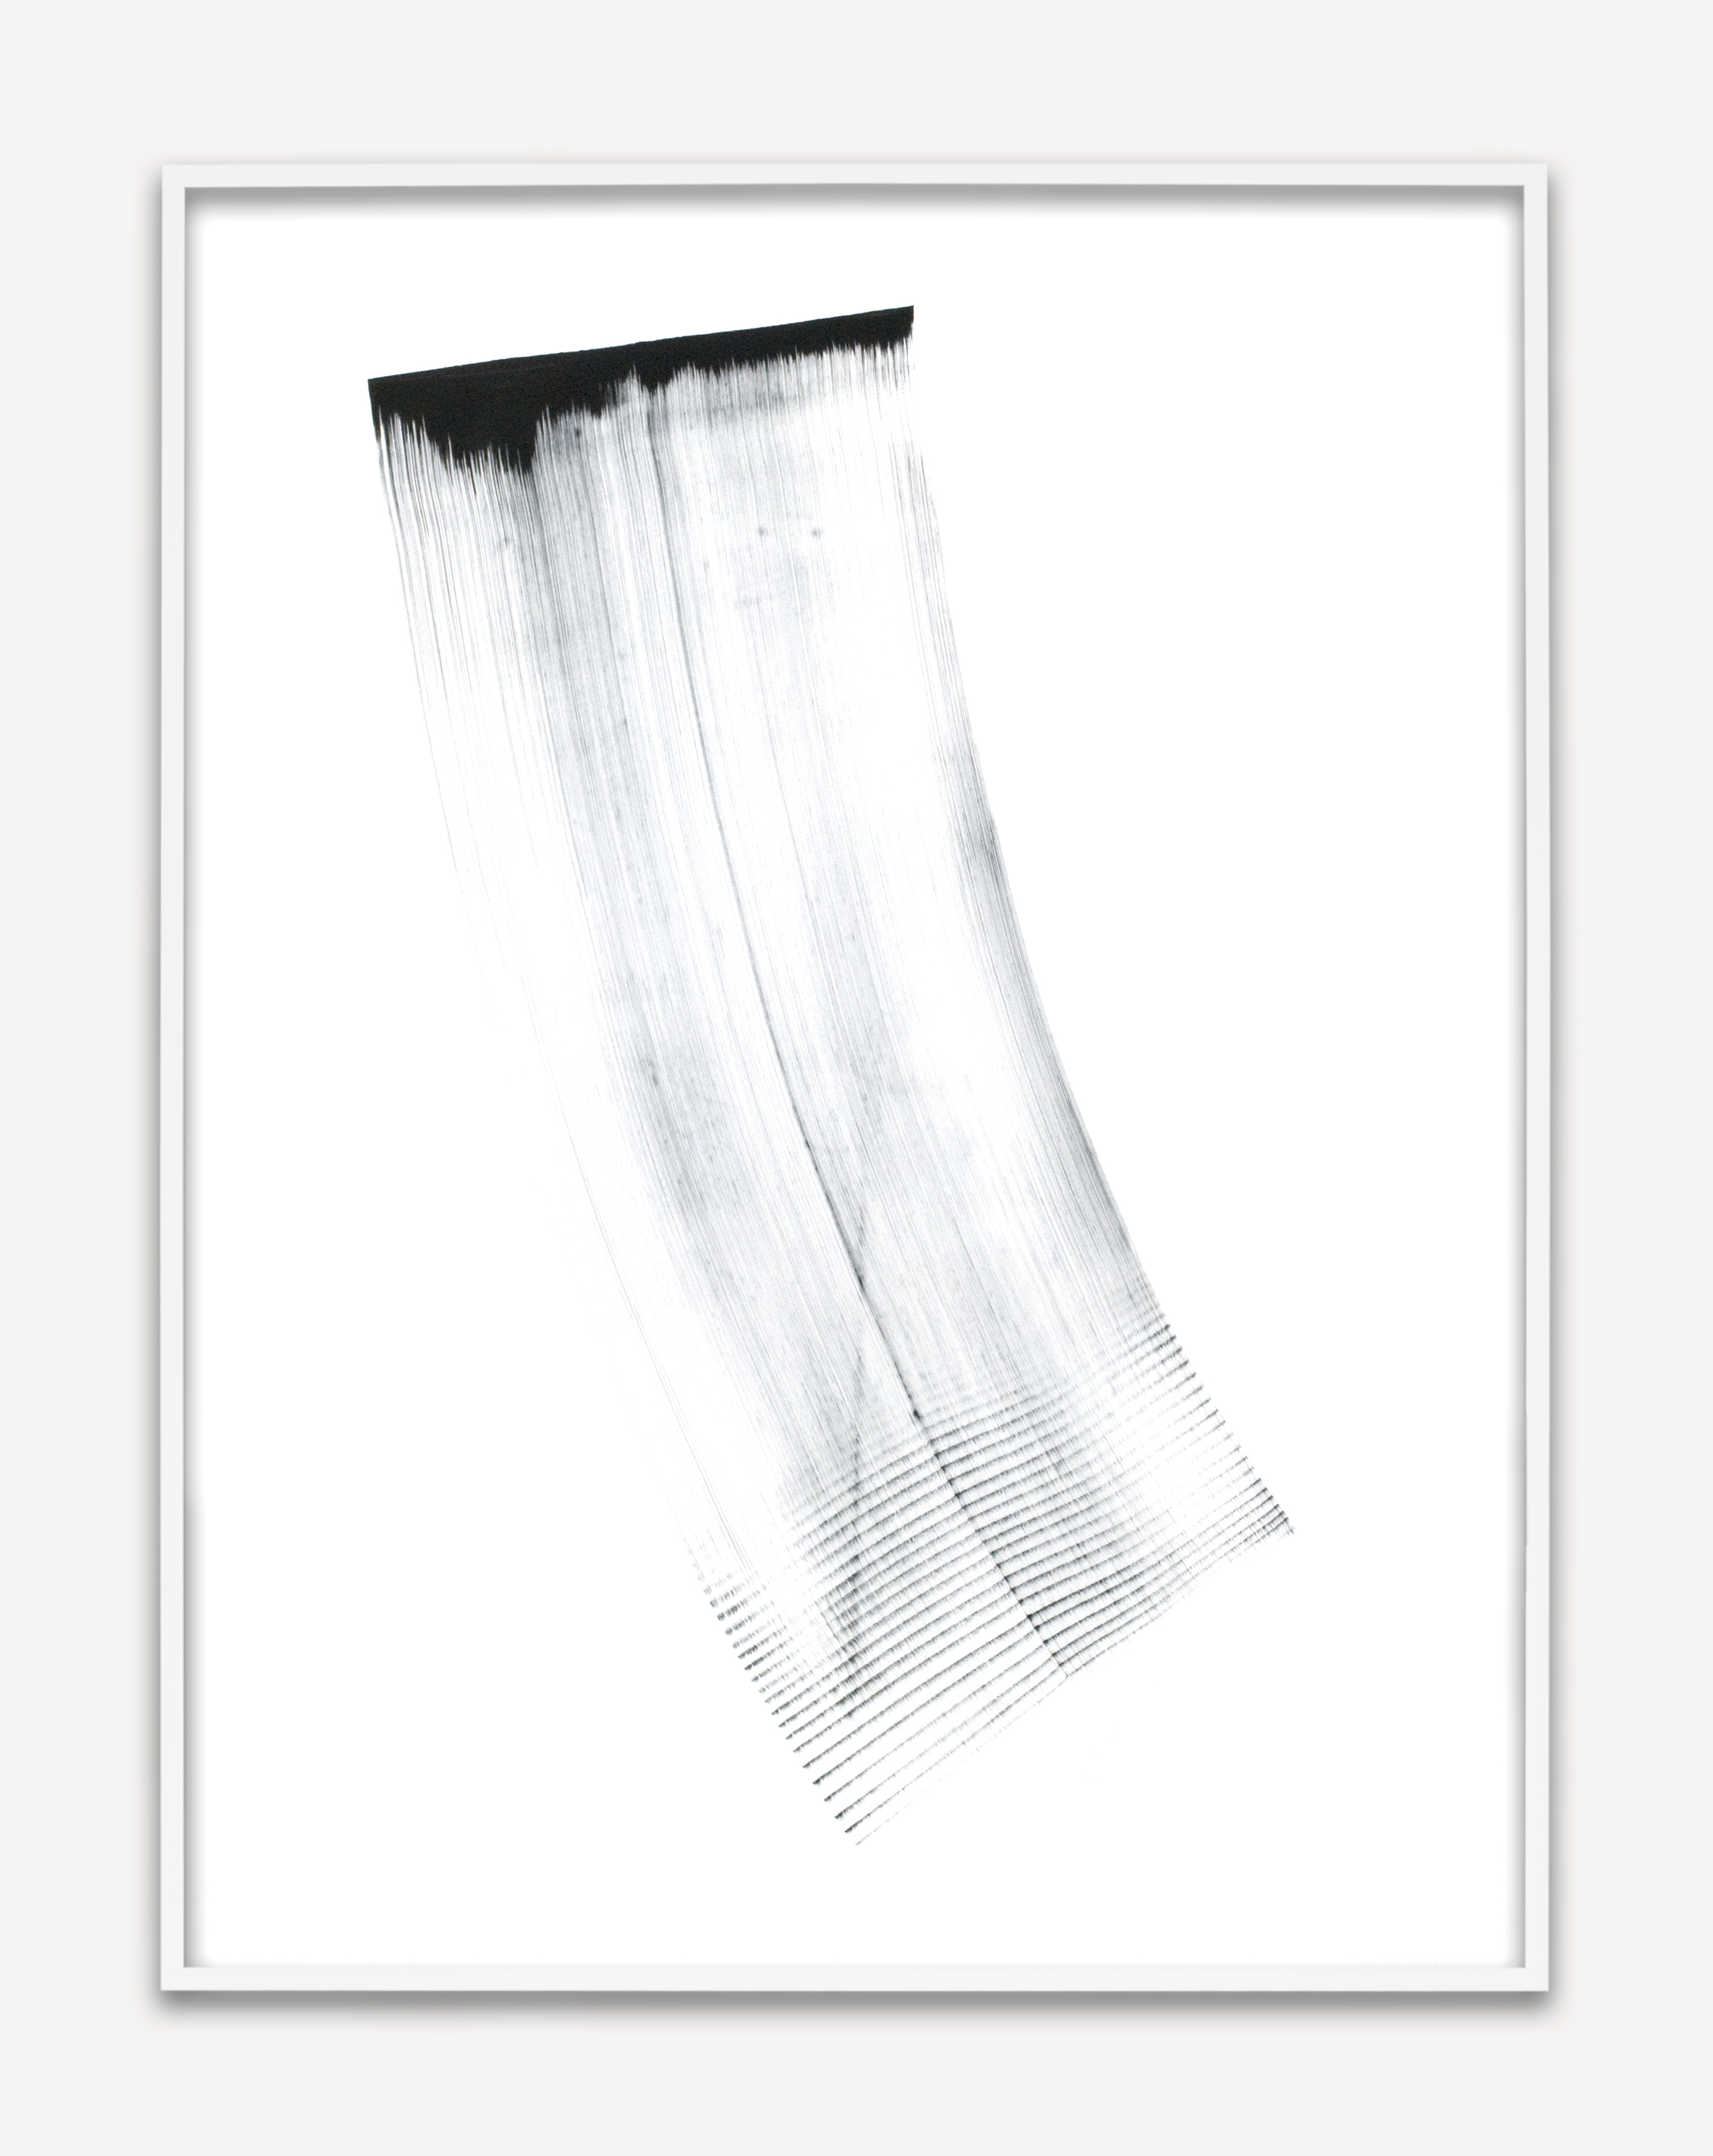 Replacement Ink for Epson Printers (Black 446008) on Epson Premium Glossy Paper, 2014 unique archival pigment print 153,5 x 113,5 cm - 60 3/8 x 44 5/8 inches (framed)